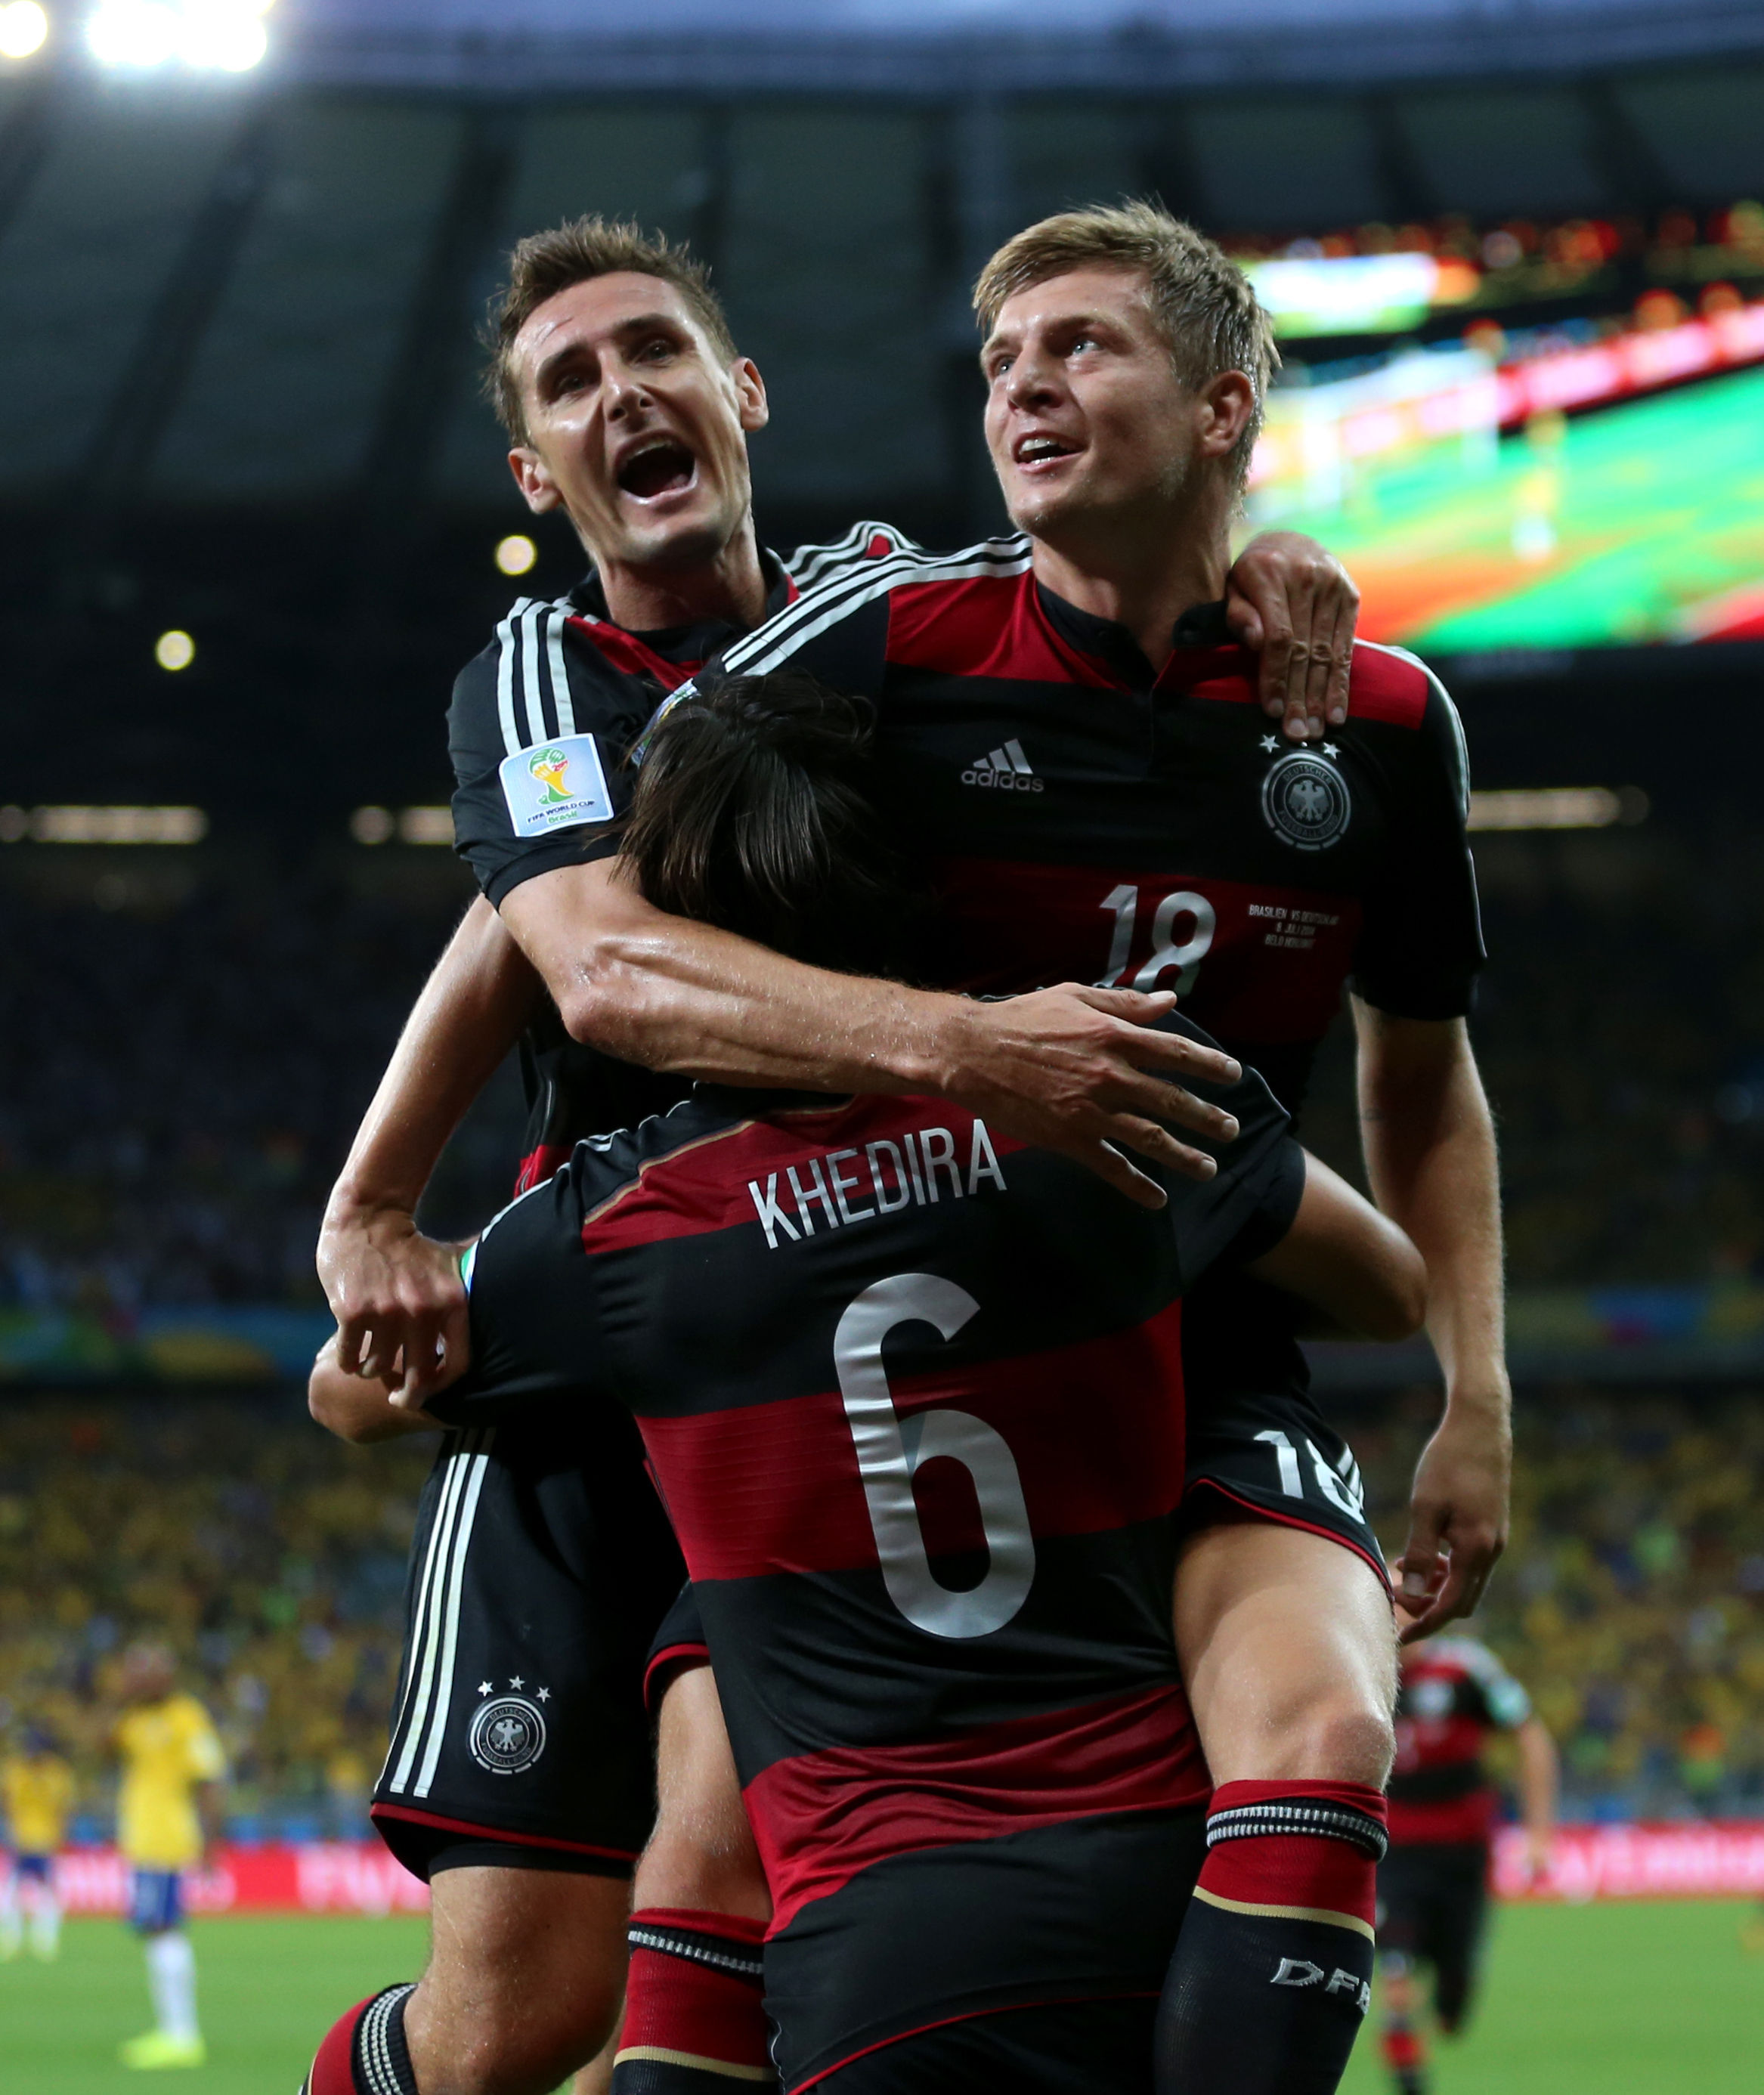 REMARKABLE DISPLAY: Toni Kroos celebrates scoring the fourth goal of Germany's 7-1 win over Brazil with team-mates Sami Khedira and Miroslav Klose